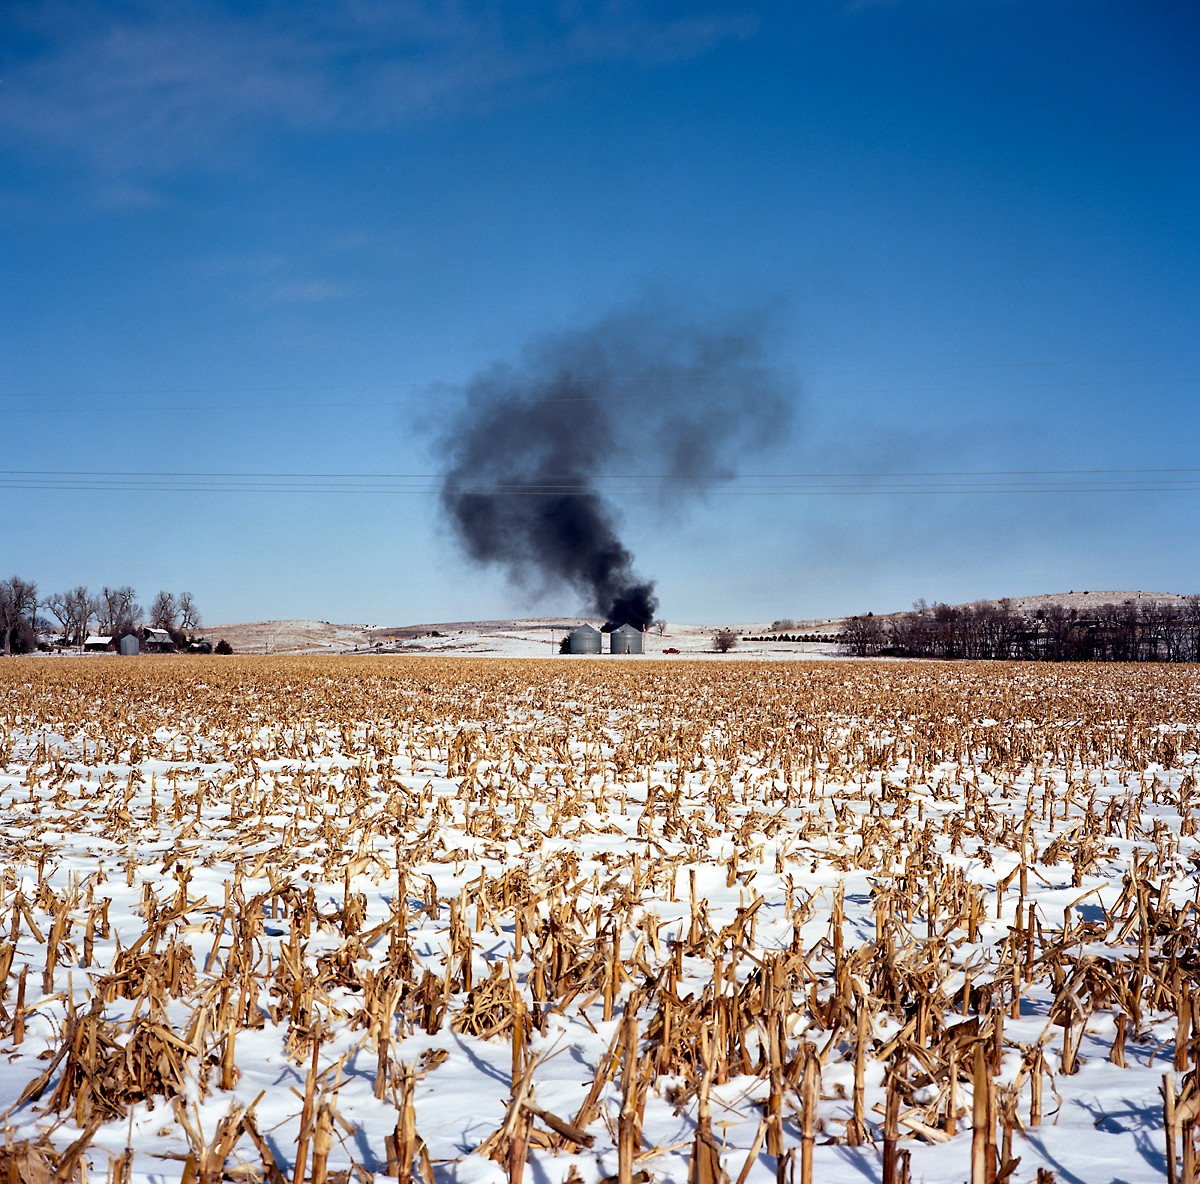 A fire burns on a corn farm in Antelope county, along U.S. Route 275. The proposed Keystone XL pipeline would cross through large patches of farms and ranches in the county.